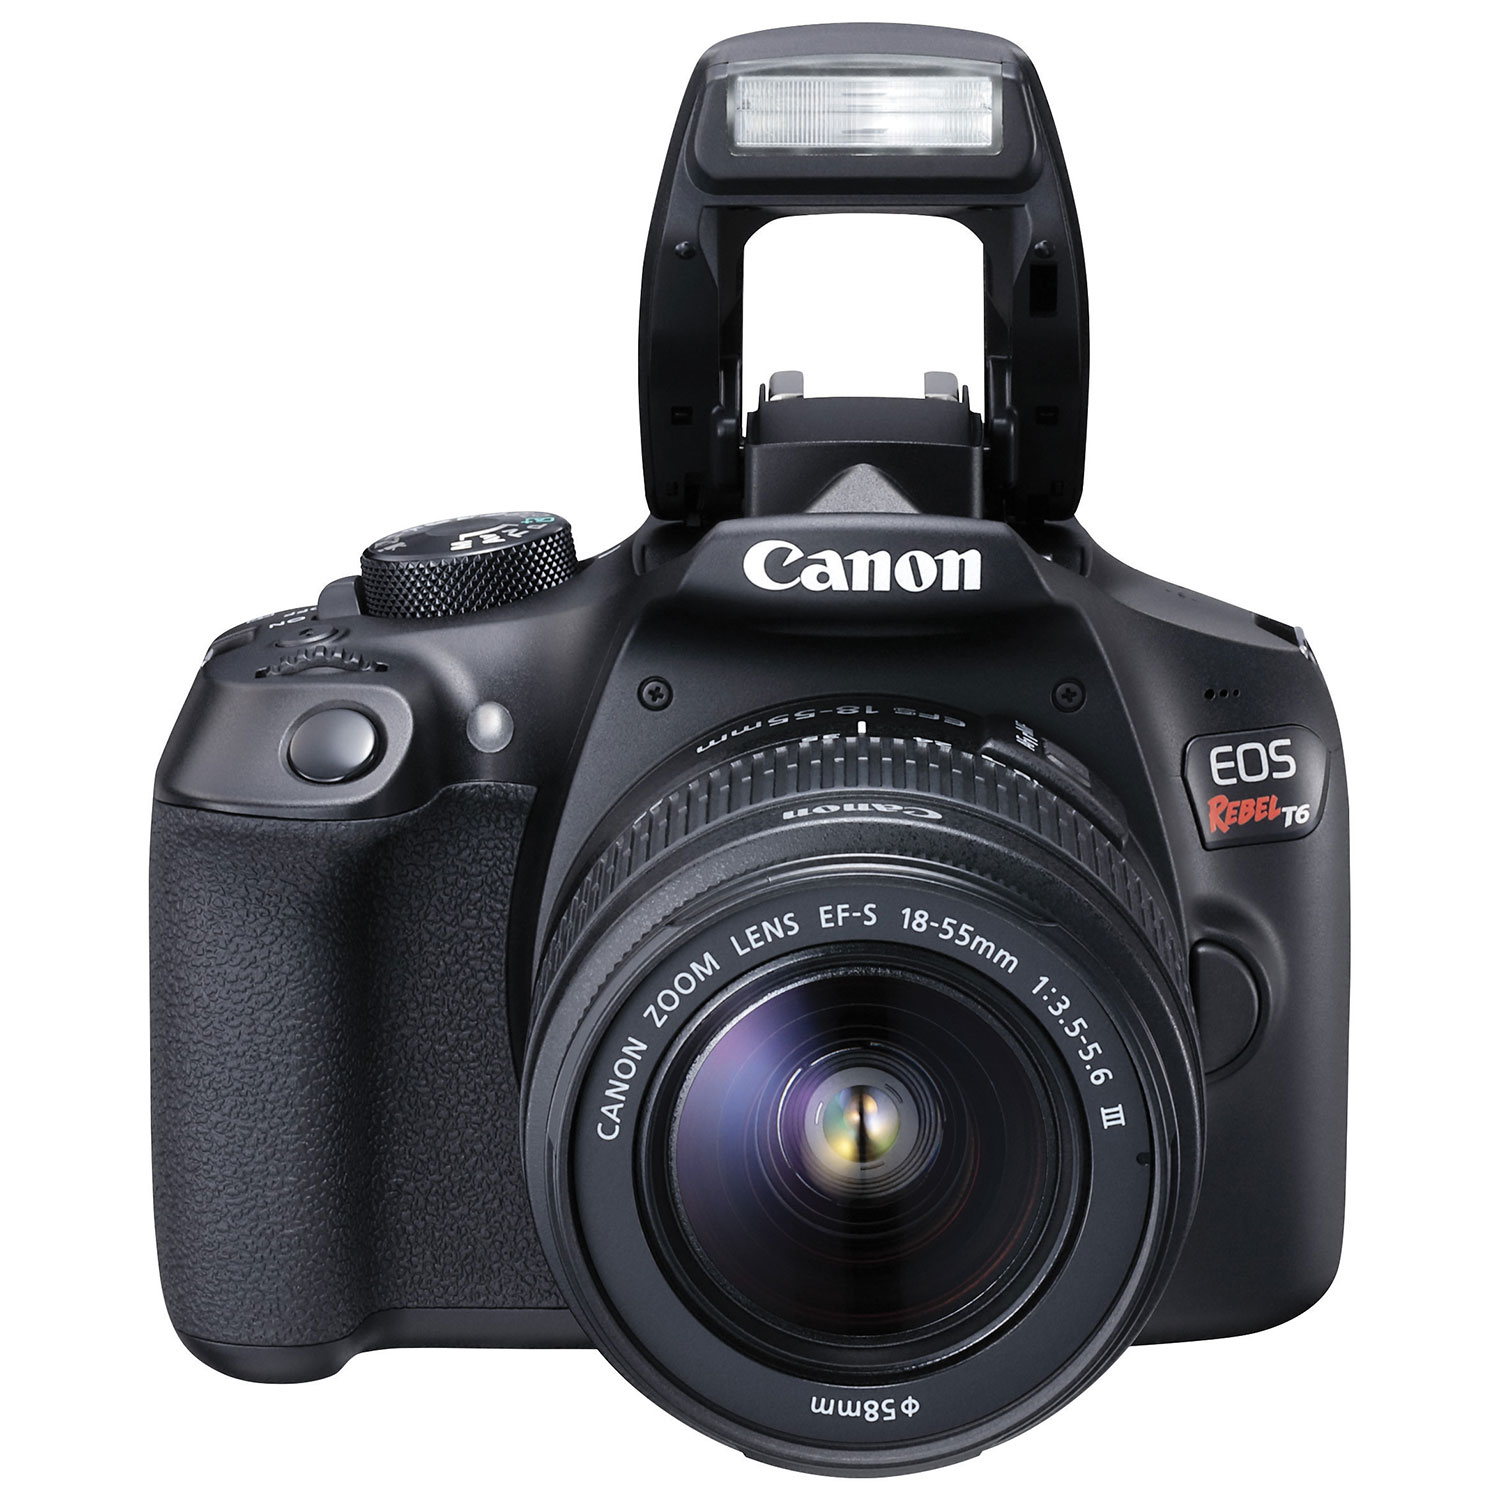 Canon Eos Rebel T6 Dslr Camera With Ef S 18 55mm F 35 56 Dc Iii Basic Controls Unleashed Lens Kit Kits Best Buy Canada